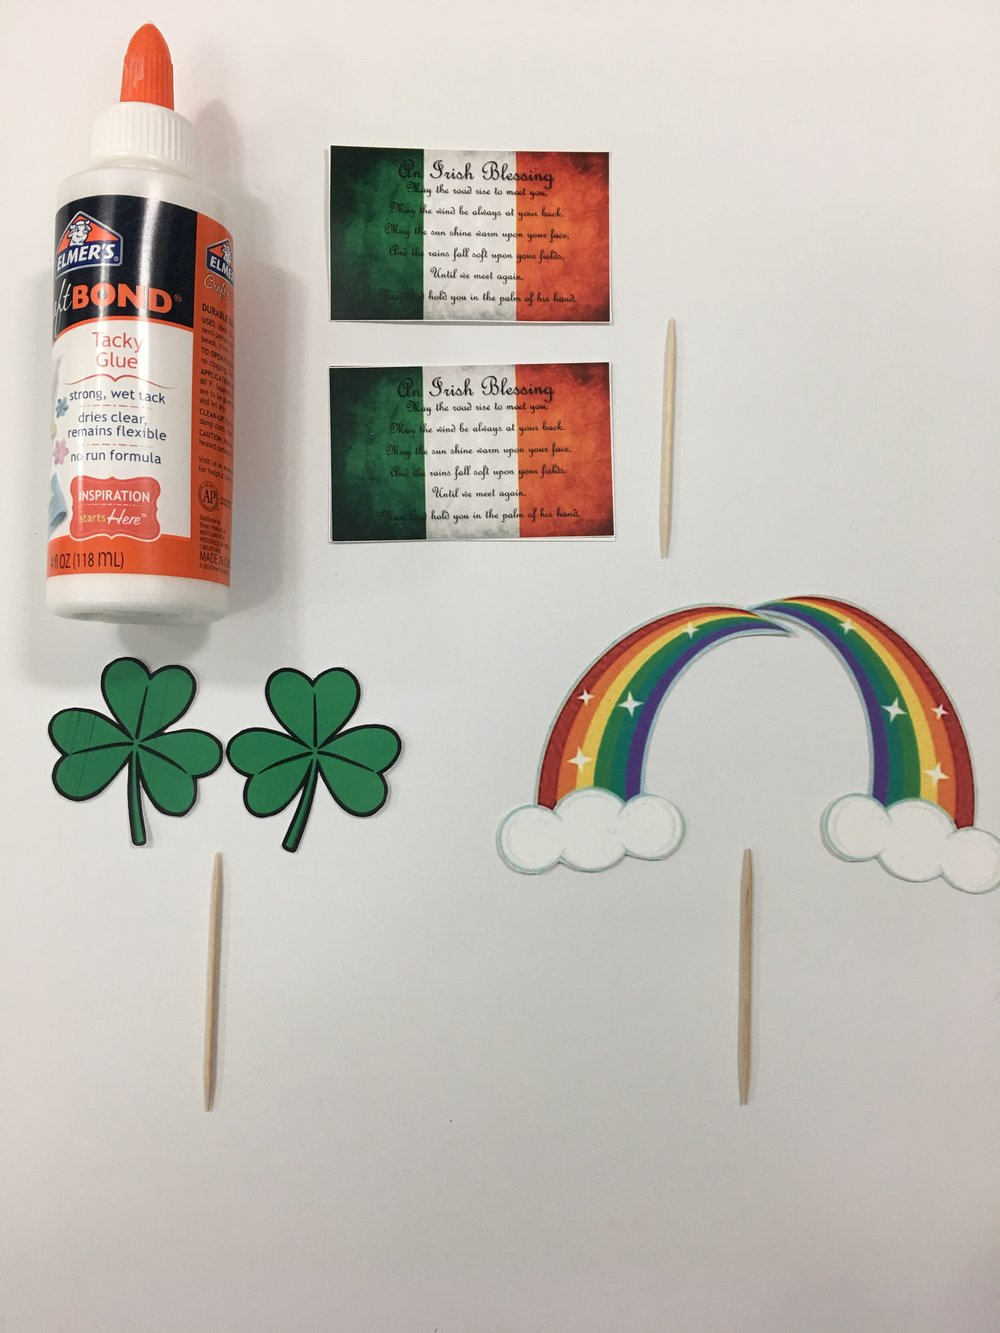 Step One: - You have the option to paint your toothpicks, or leave them plain. I opted to not paint. Print and cut out your images. Then glue them to the toothpicks.DIY TIP: To personalize, before you print, you can add a name, quote, or saying to the flag tag. For this project I decided to add the Irish Blessing. :)